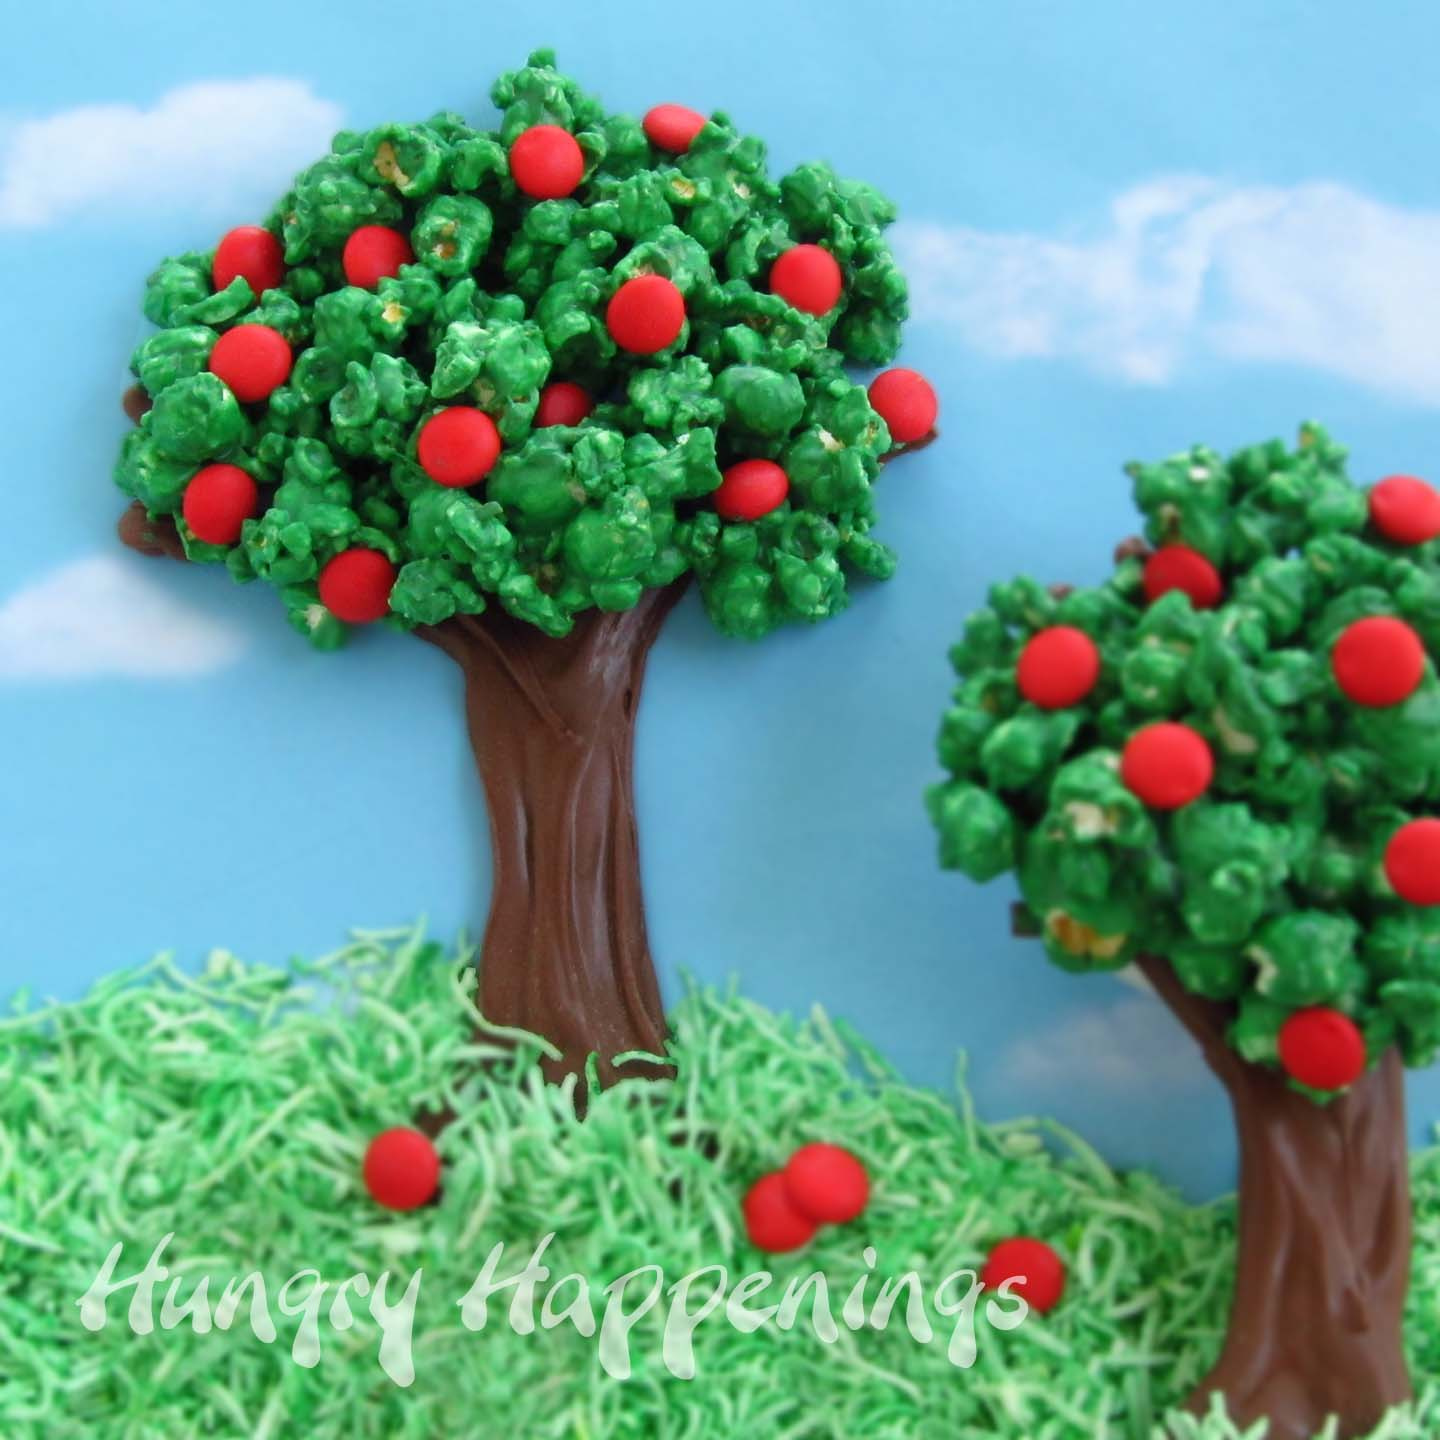 Chocolate Popcorn Trees - Hungry Happenings Recipes